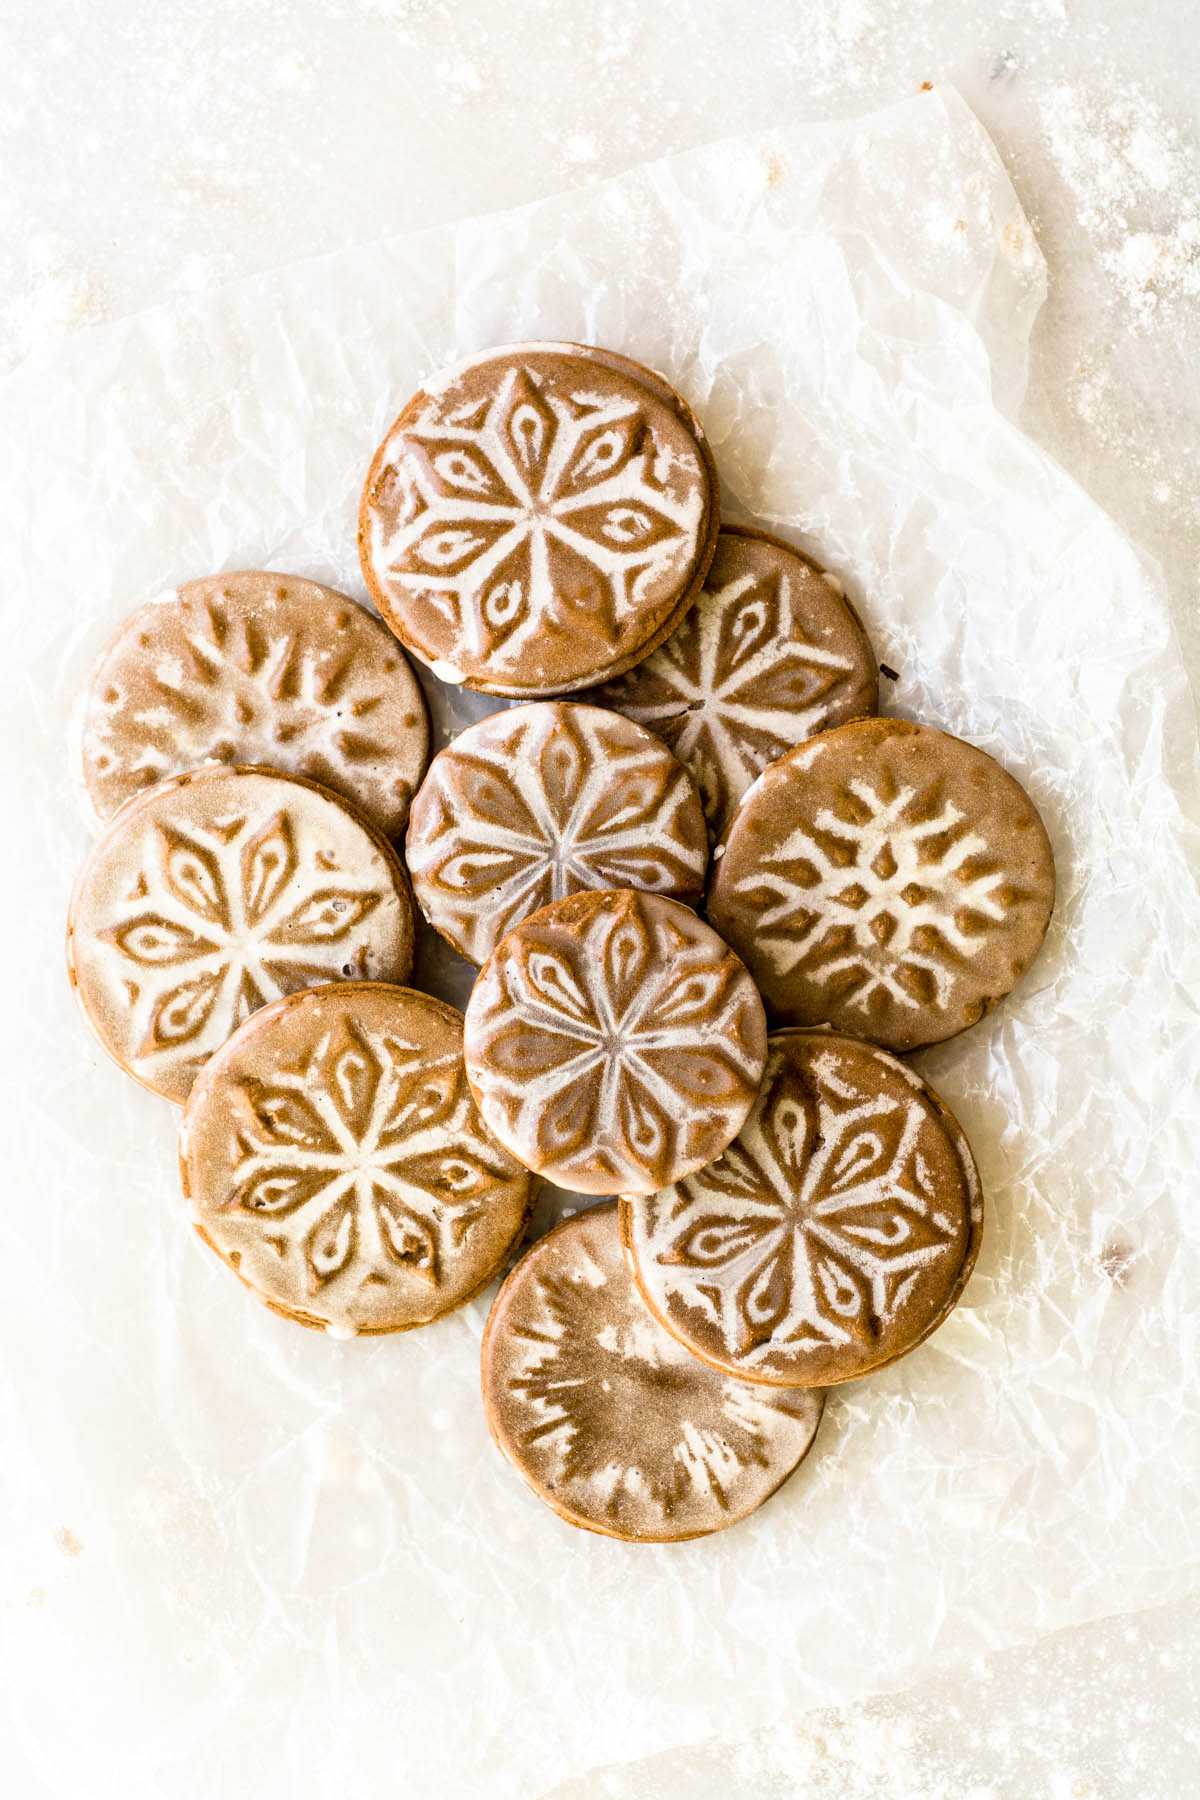 Soft Glazed Gingerbread Cookies on waxed paper